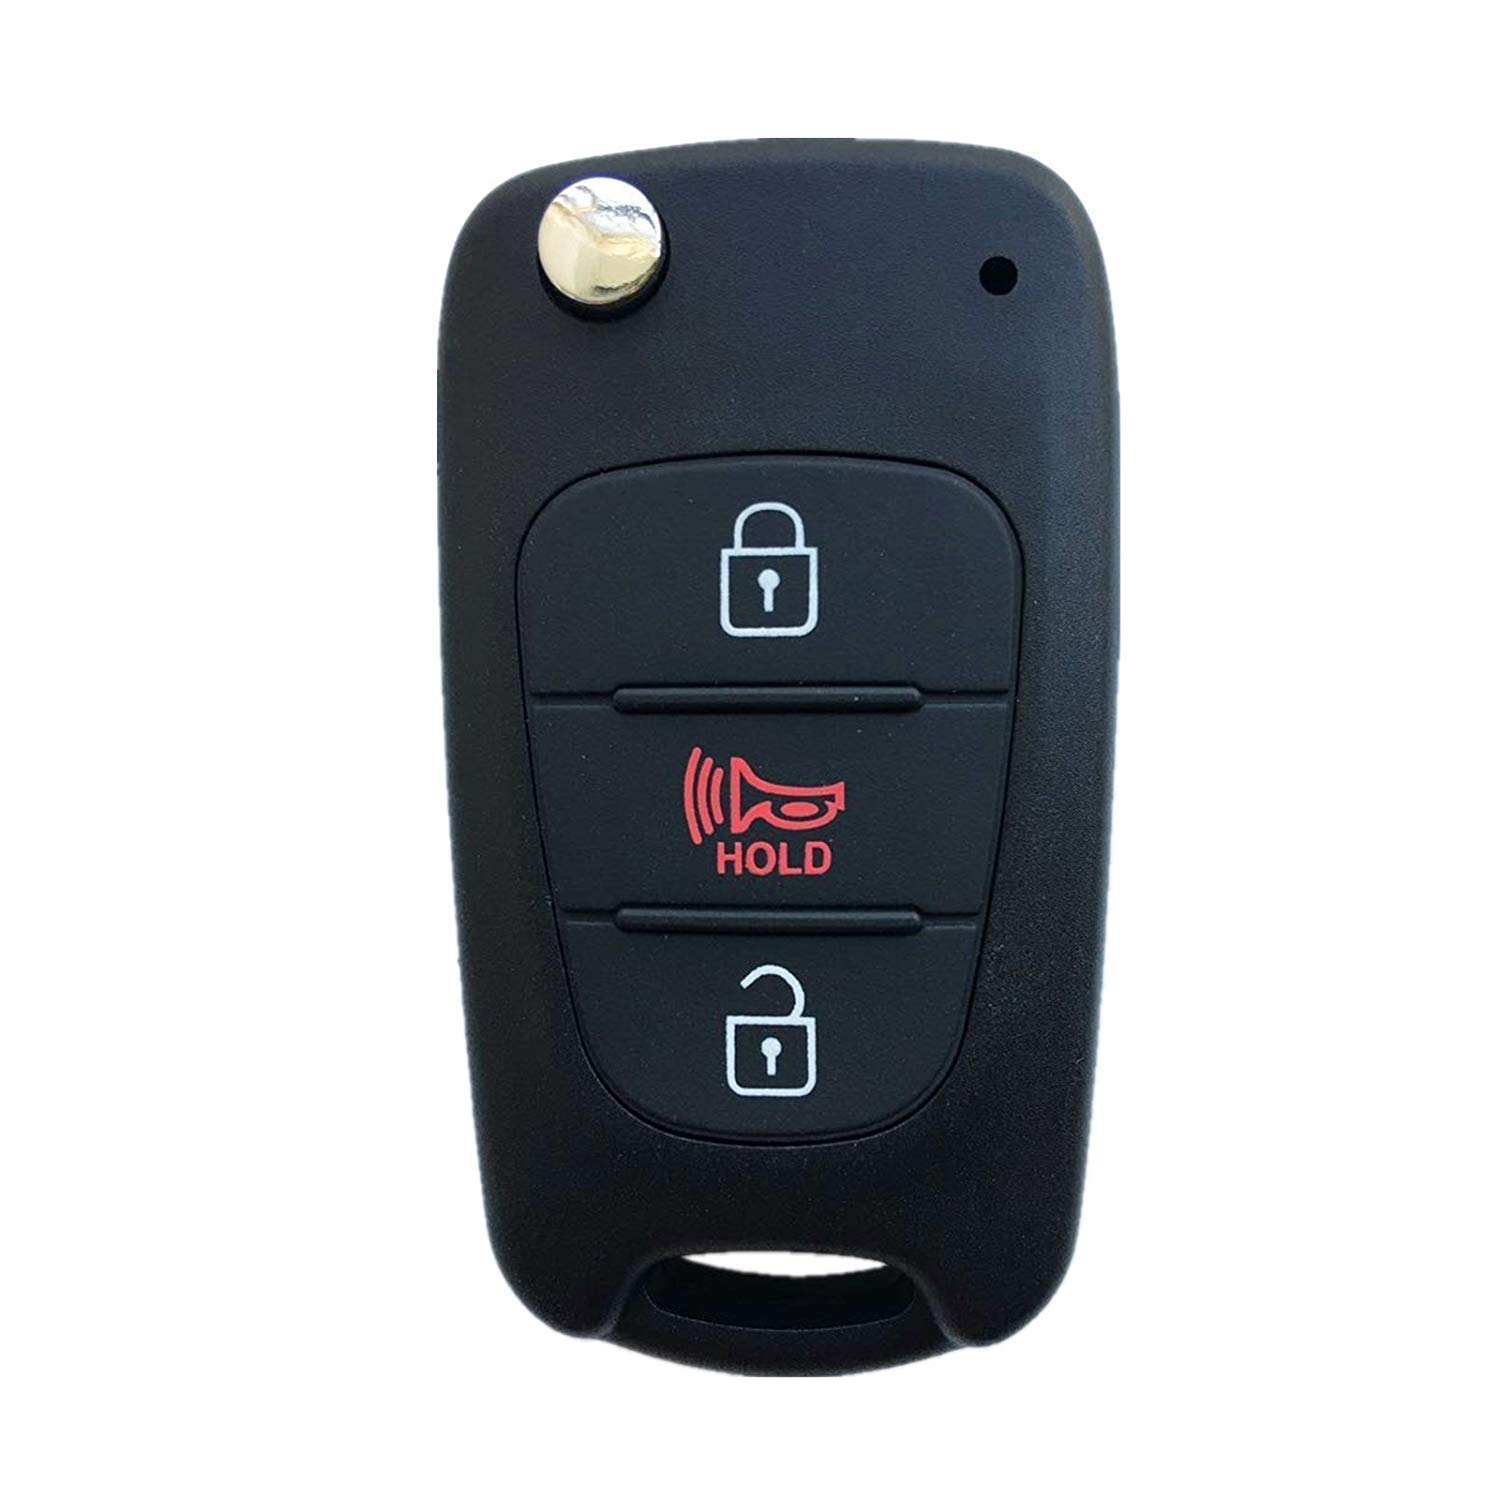 Dudely Just the Case Keyless Entry Remote Control 3 Key Shell Fob Case Cover for 2010-2013 KIA Soul NYOSEKSAM11ATX Fulfilled by